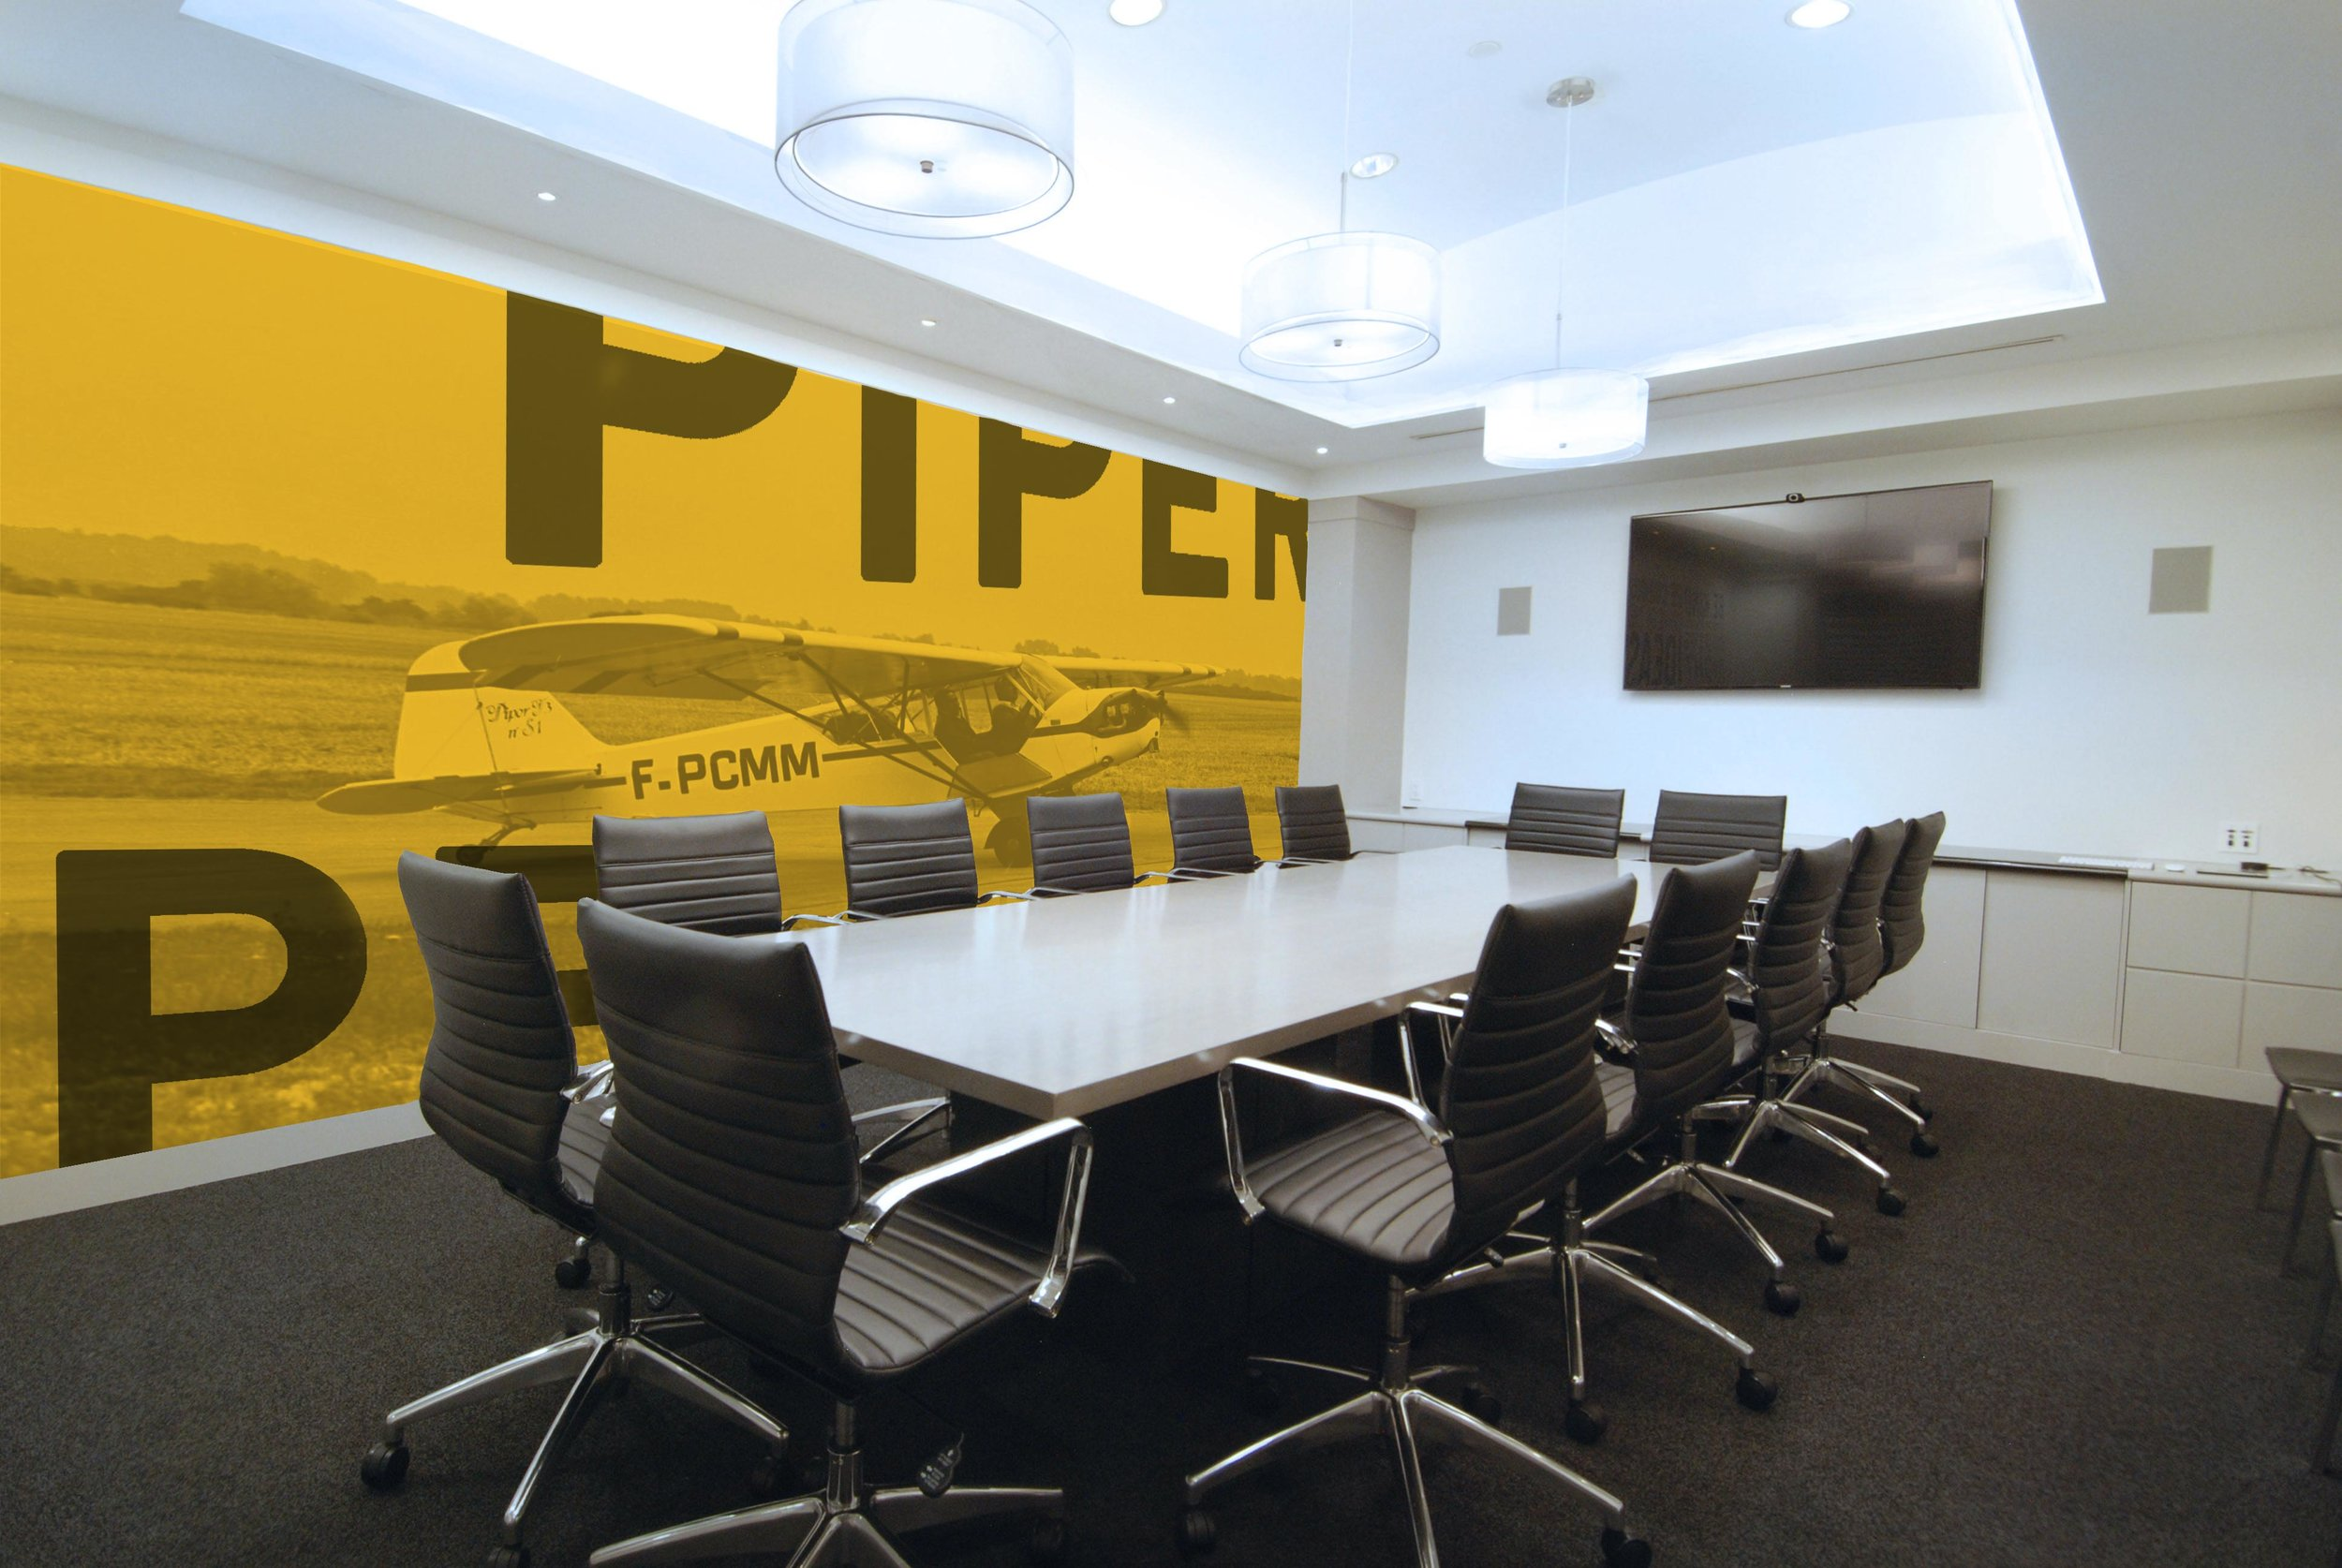 Piper-Conference-Room.jpg